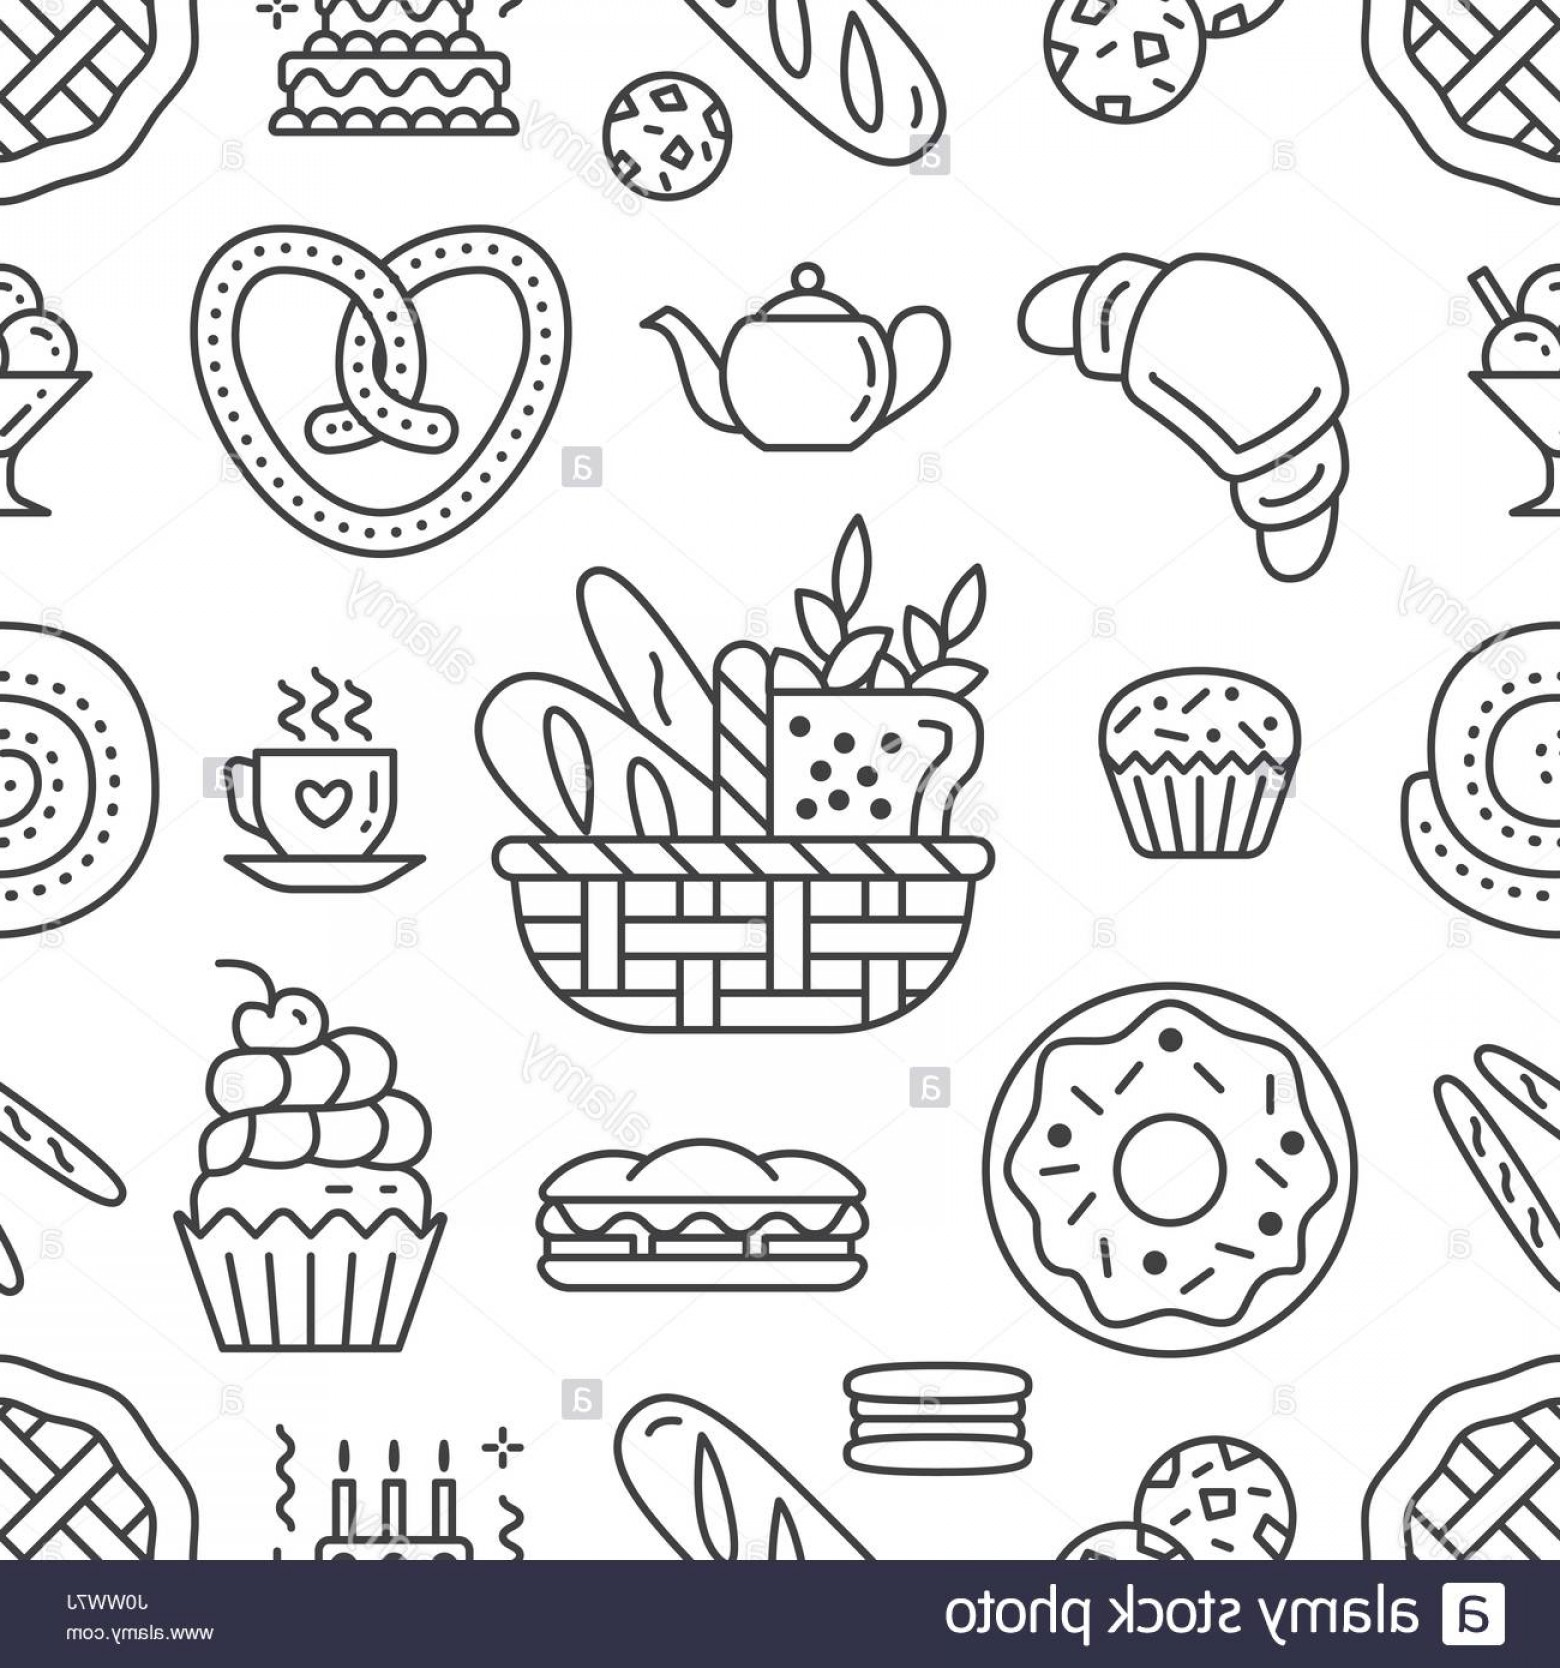 Stock Photo Bakery Seamless Pattern Food Vector Background Of Black.